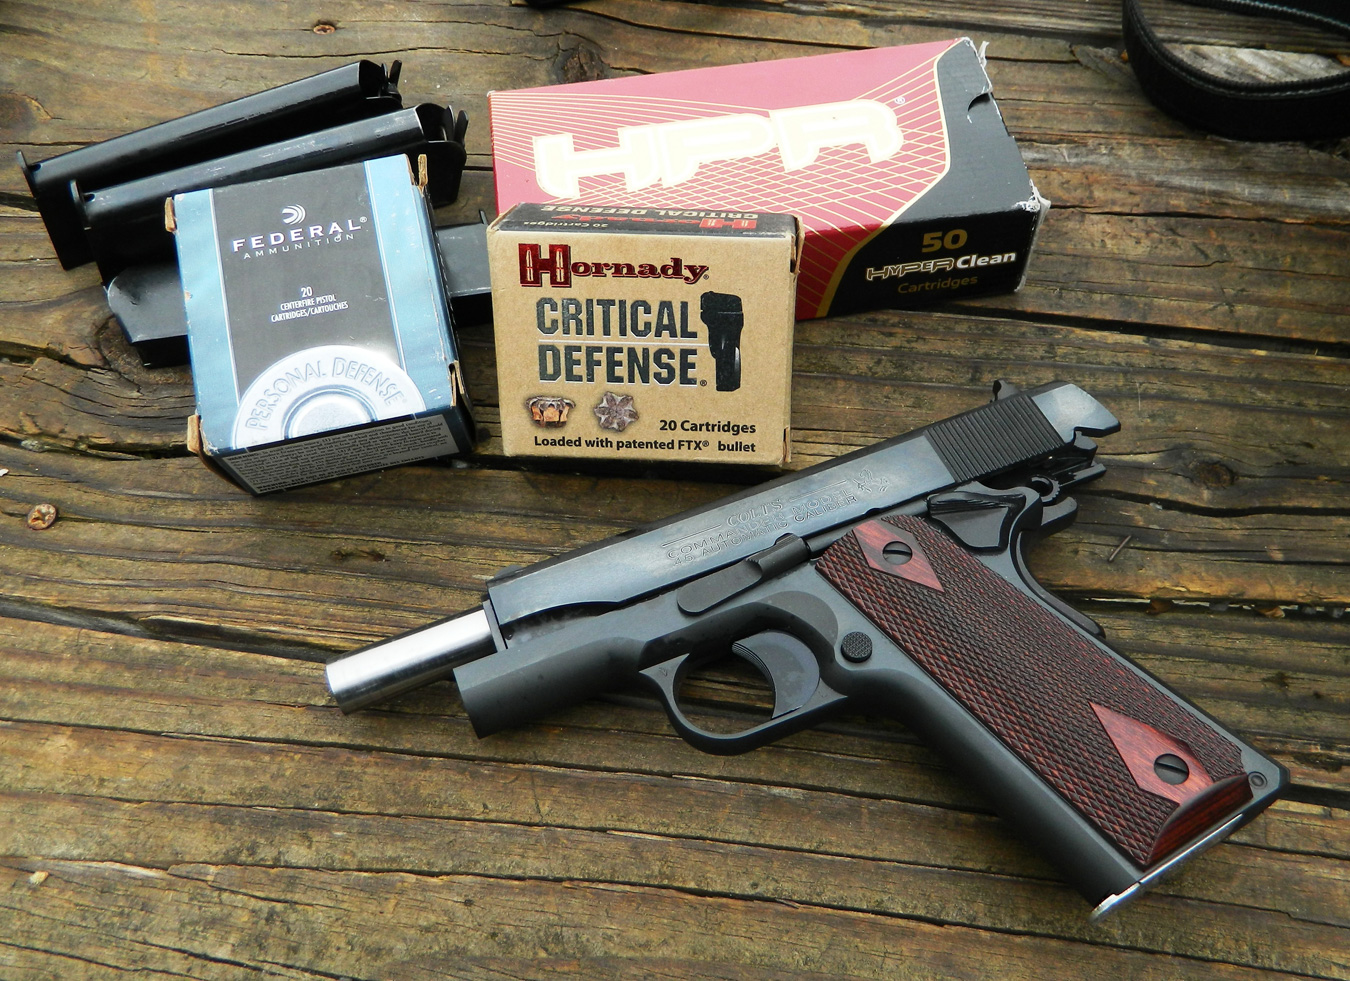 1911 pistol with slide locked back and three boxes of ammunition